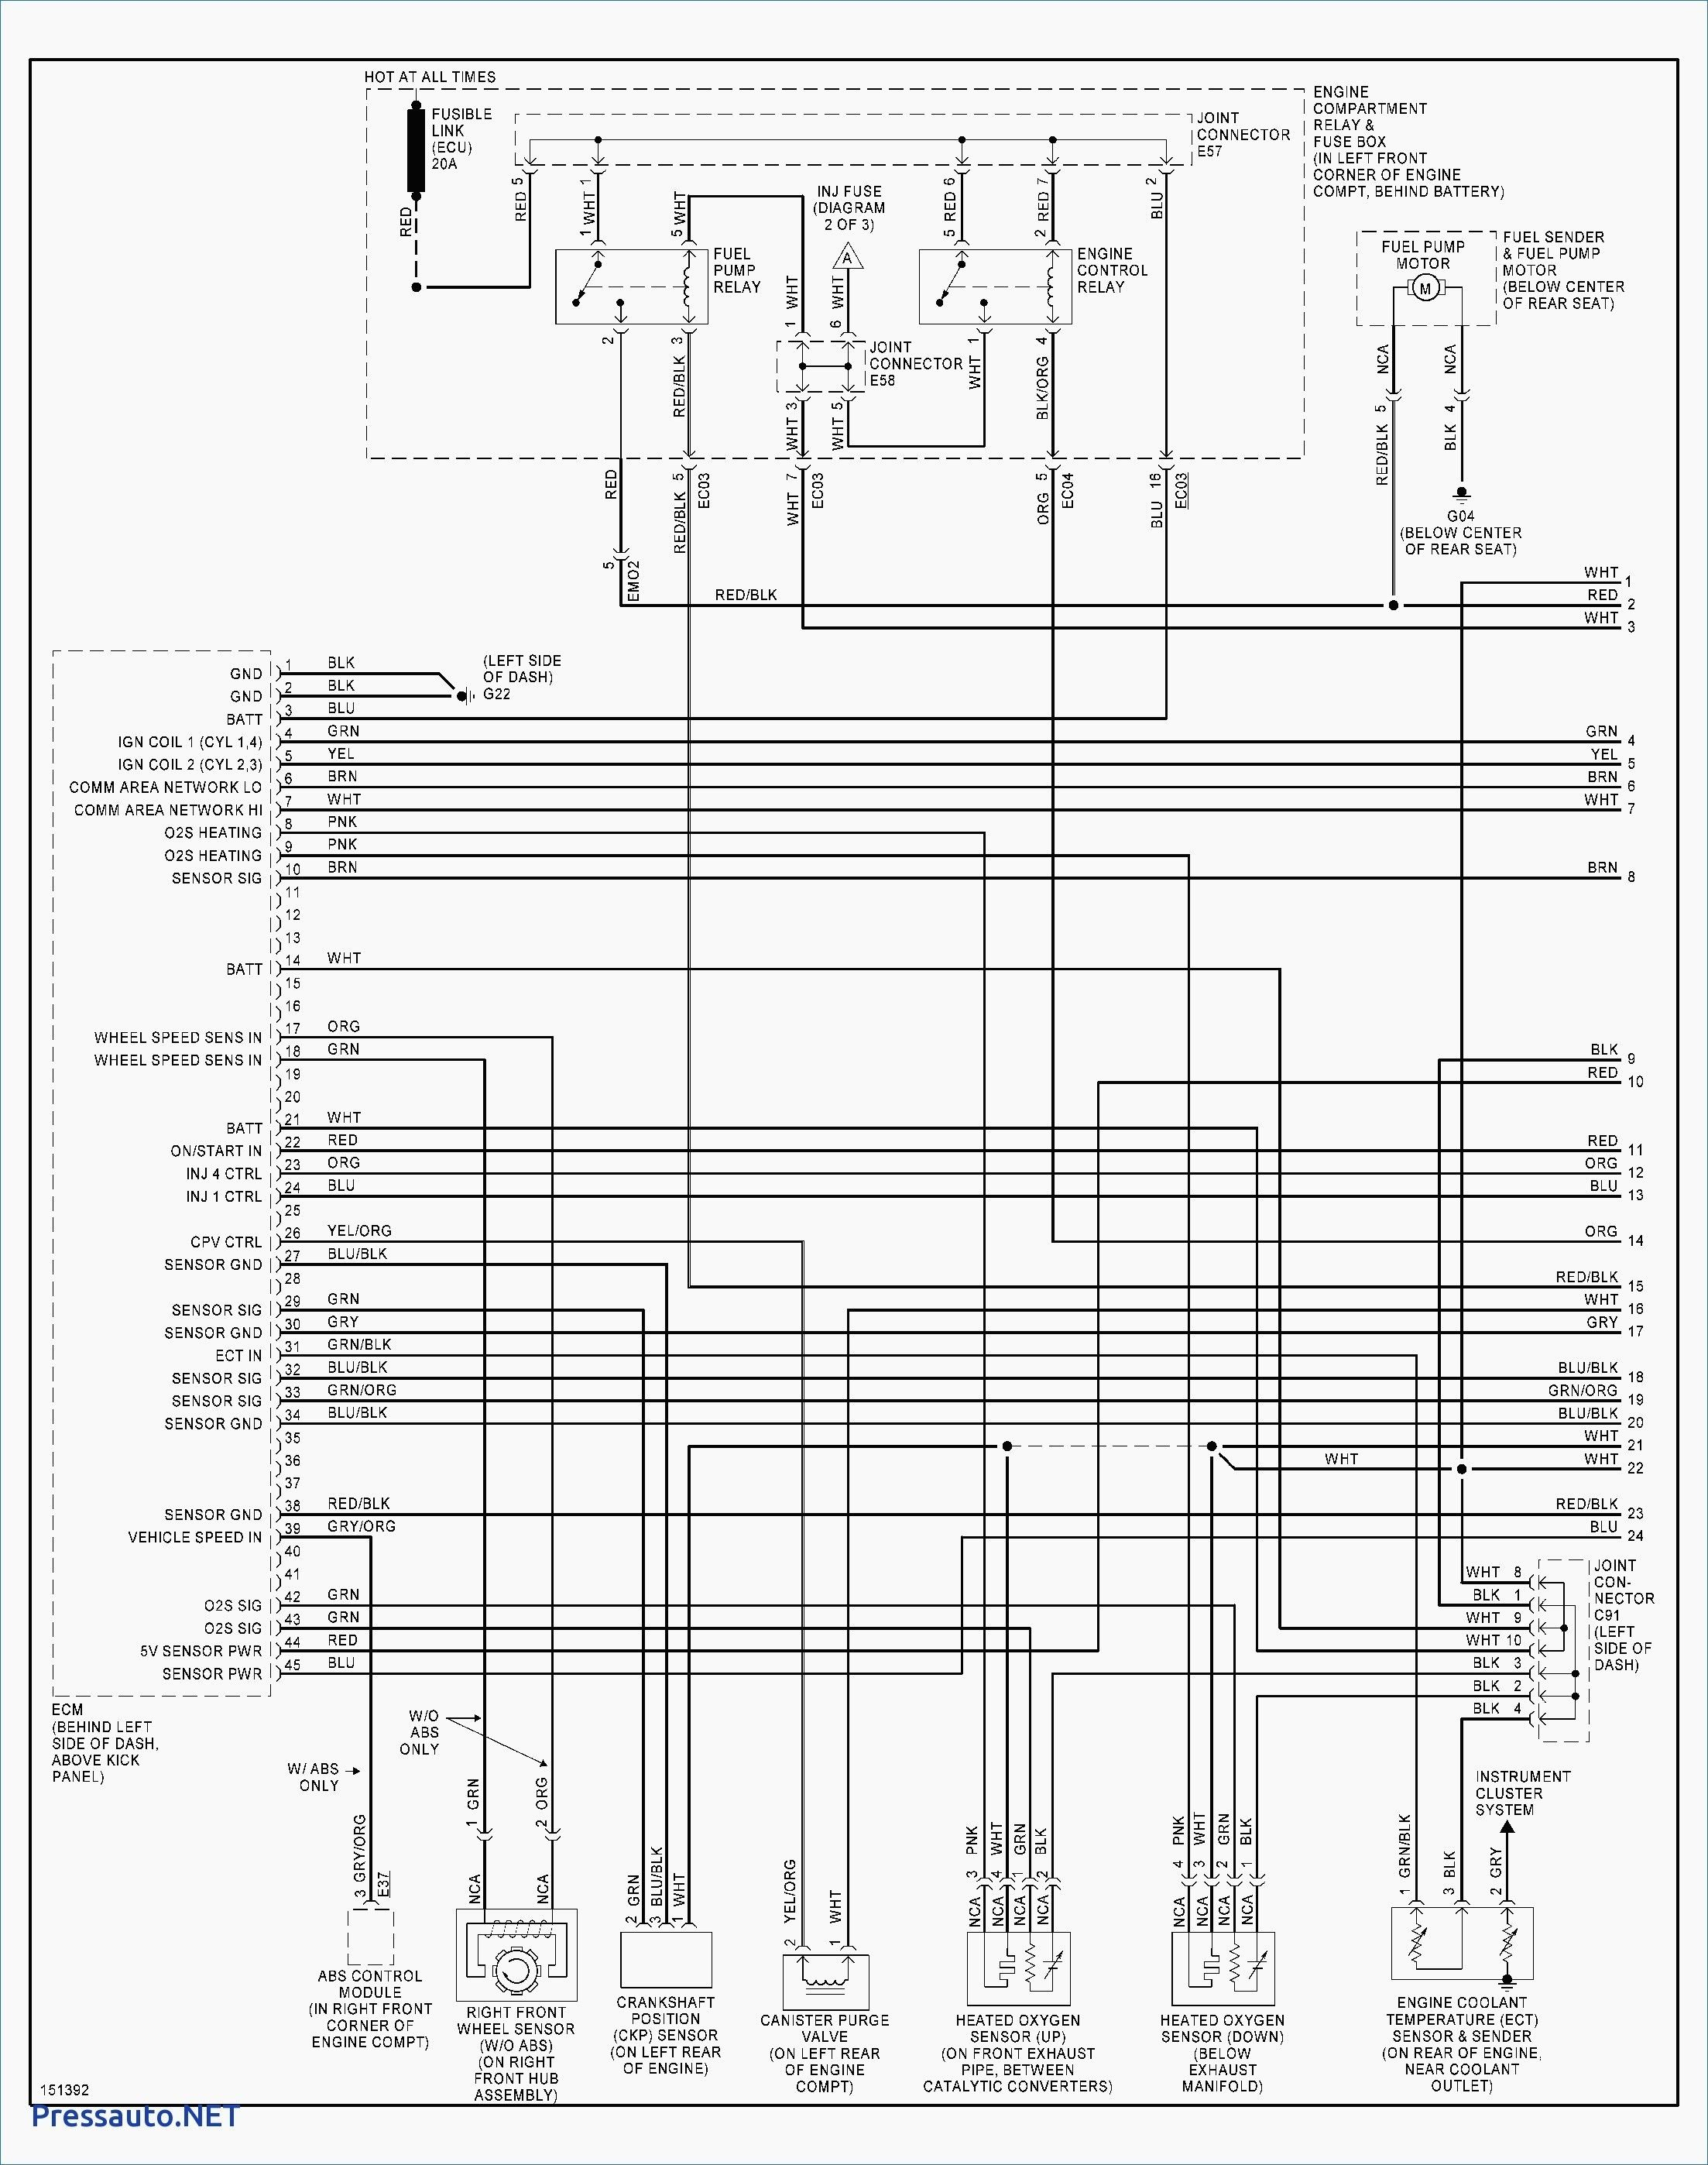 Ford Fuel Pump Relay Wiring Diagram Bookingritzcarlton Info Hyundai Accent Hyundai Elantra Electrical Diagram